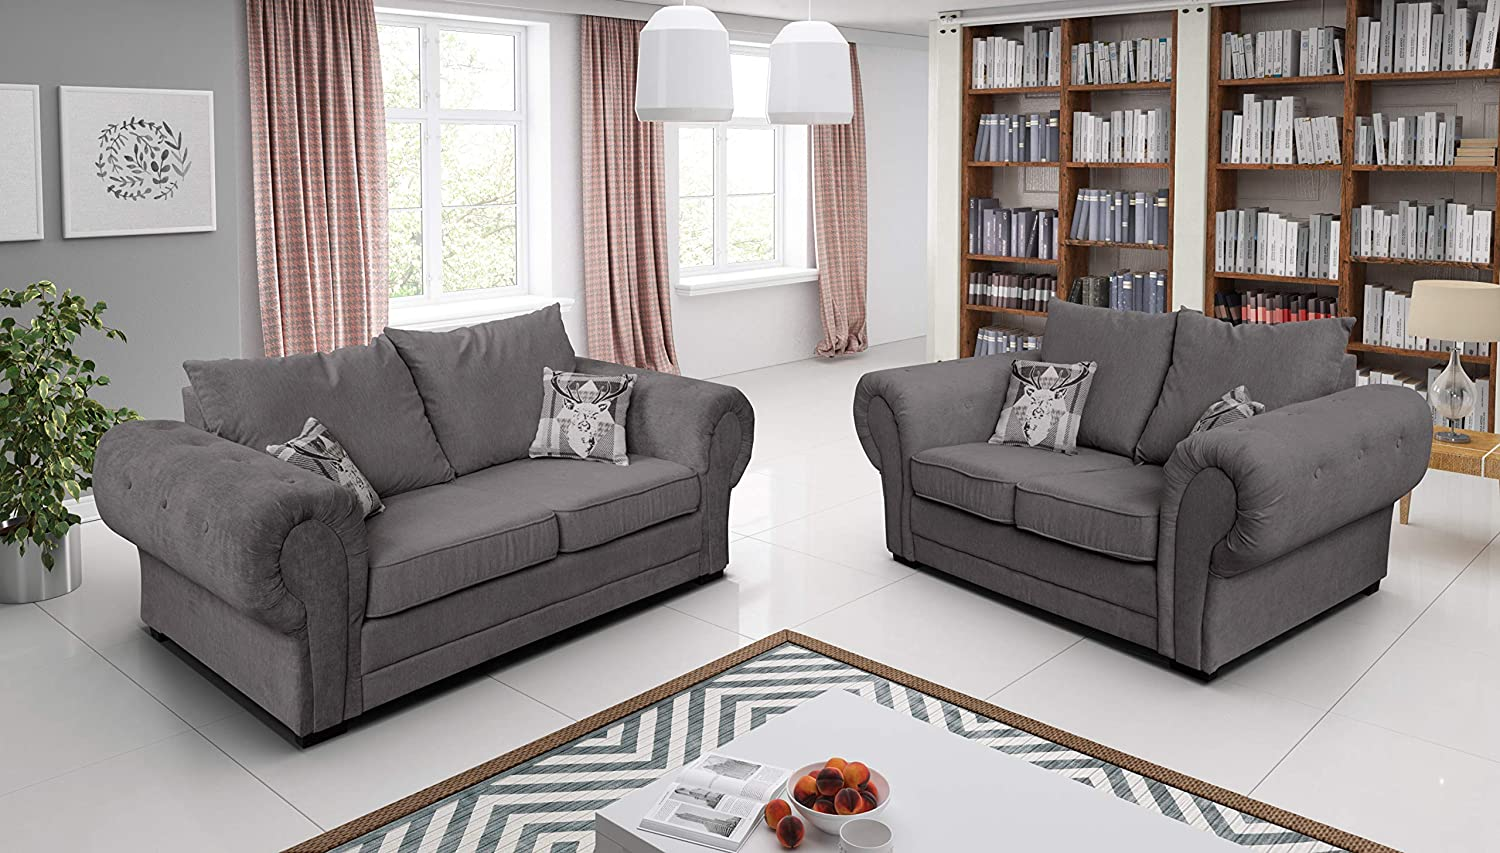 Amazing sofas-FIRE RESISTANT-New Large UNIVERSAL VERONA Baron Corner SOFA SET 3 2 1 seats seater OR Left or Right GREY SILVER, foam filled seats for comfort(3+2, full back, Grey)